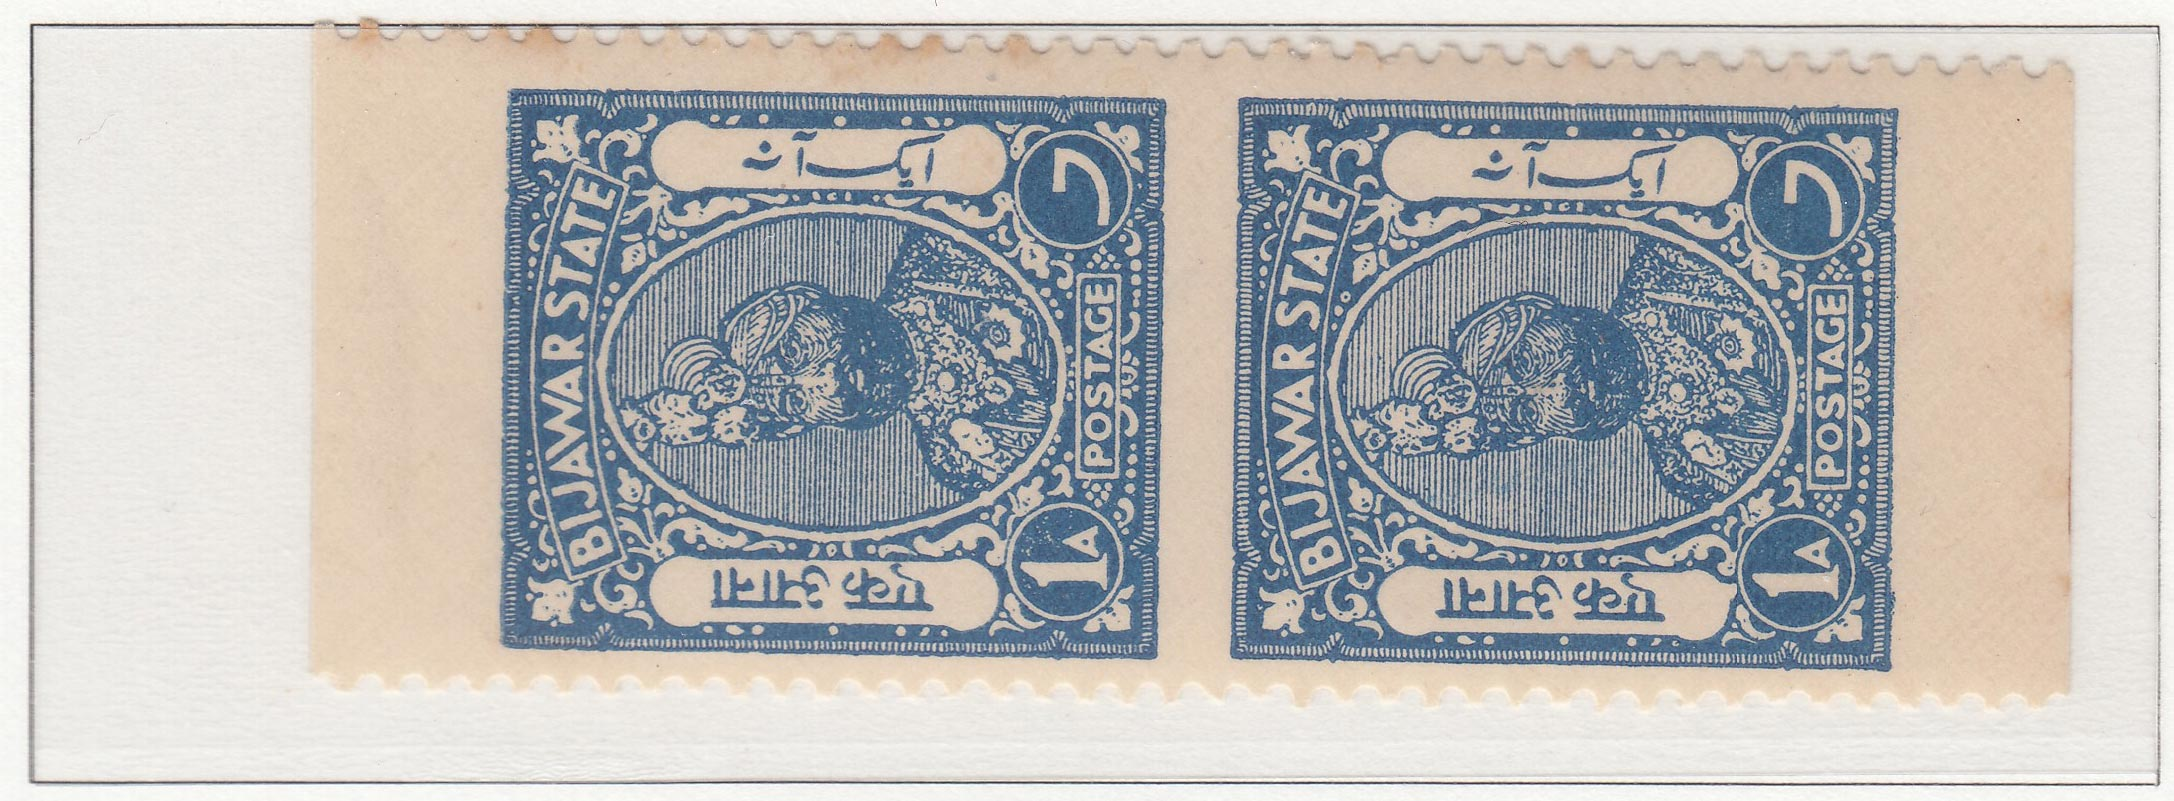 8-bijawar-1-anna-blue-imperforate-vertically-on-two0sides